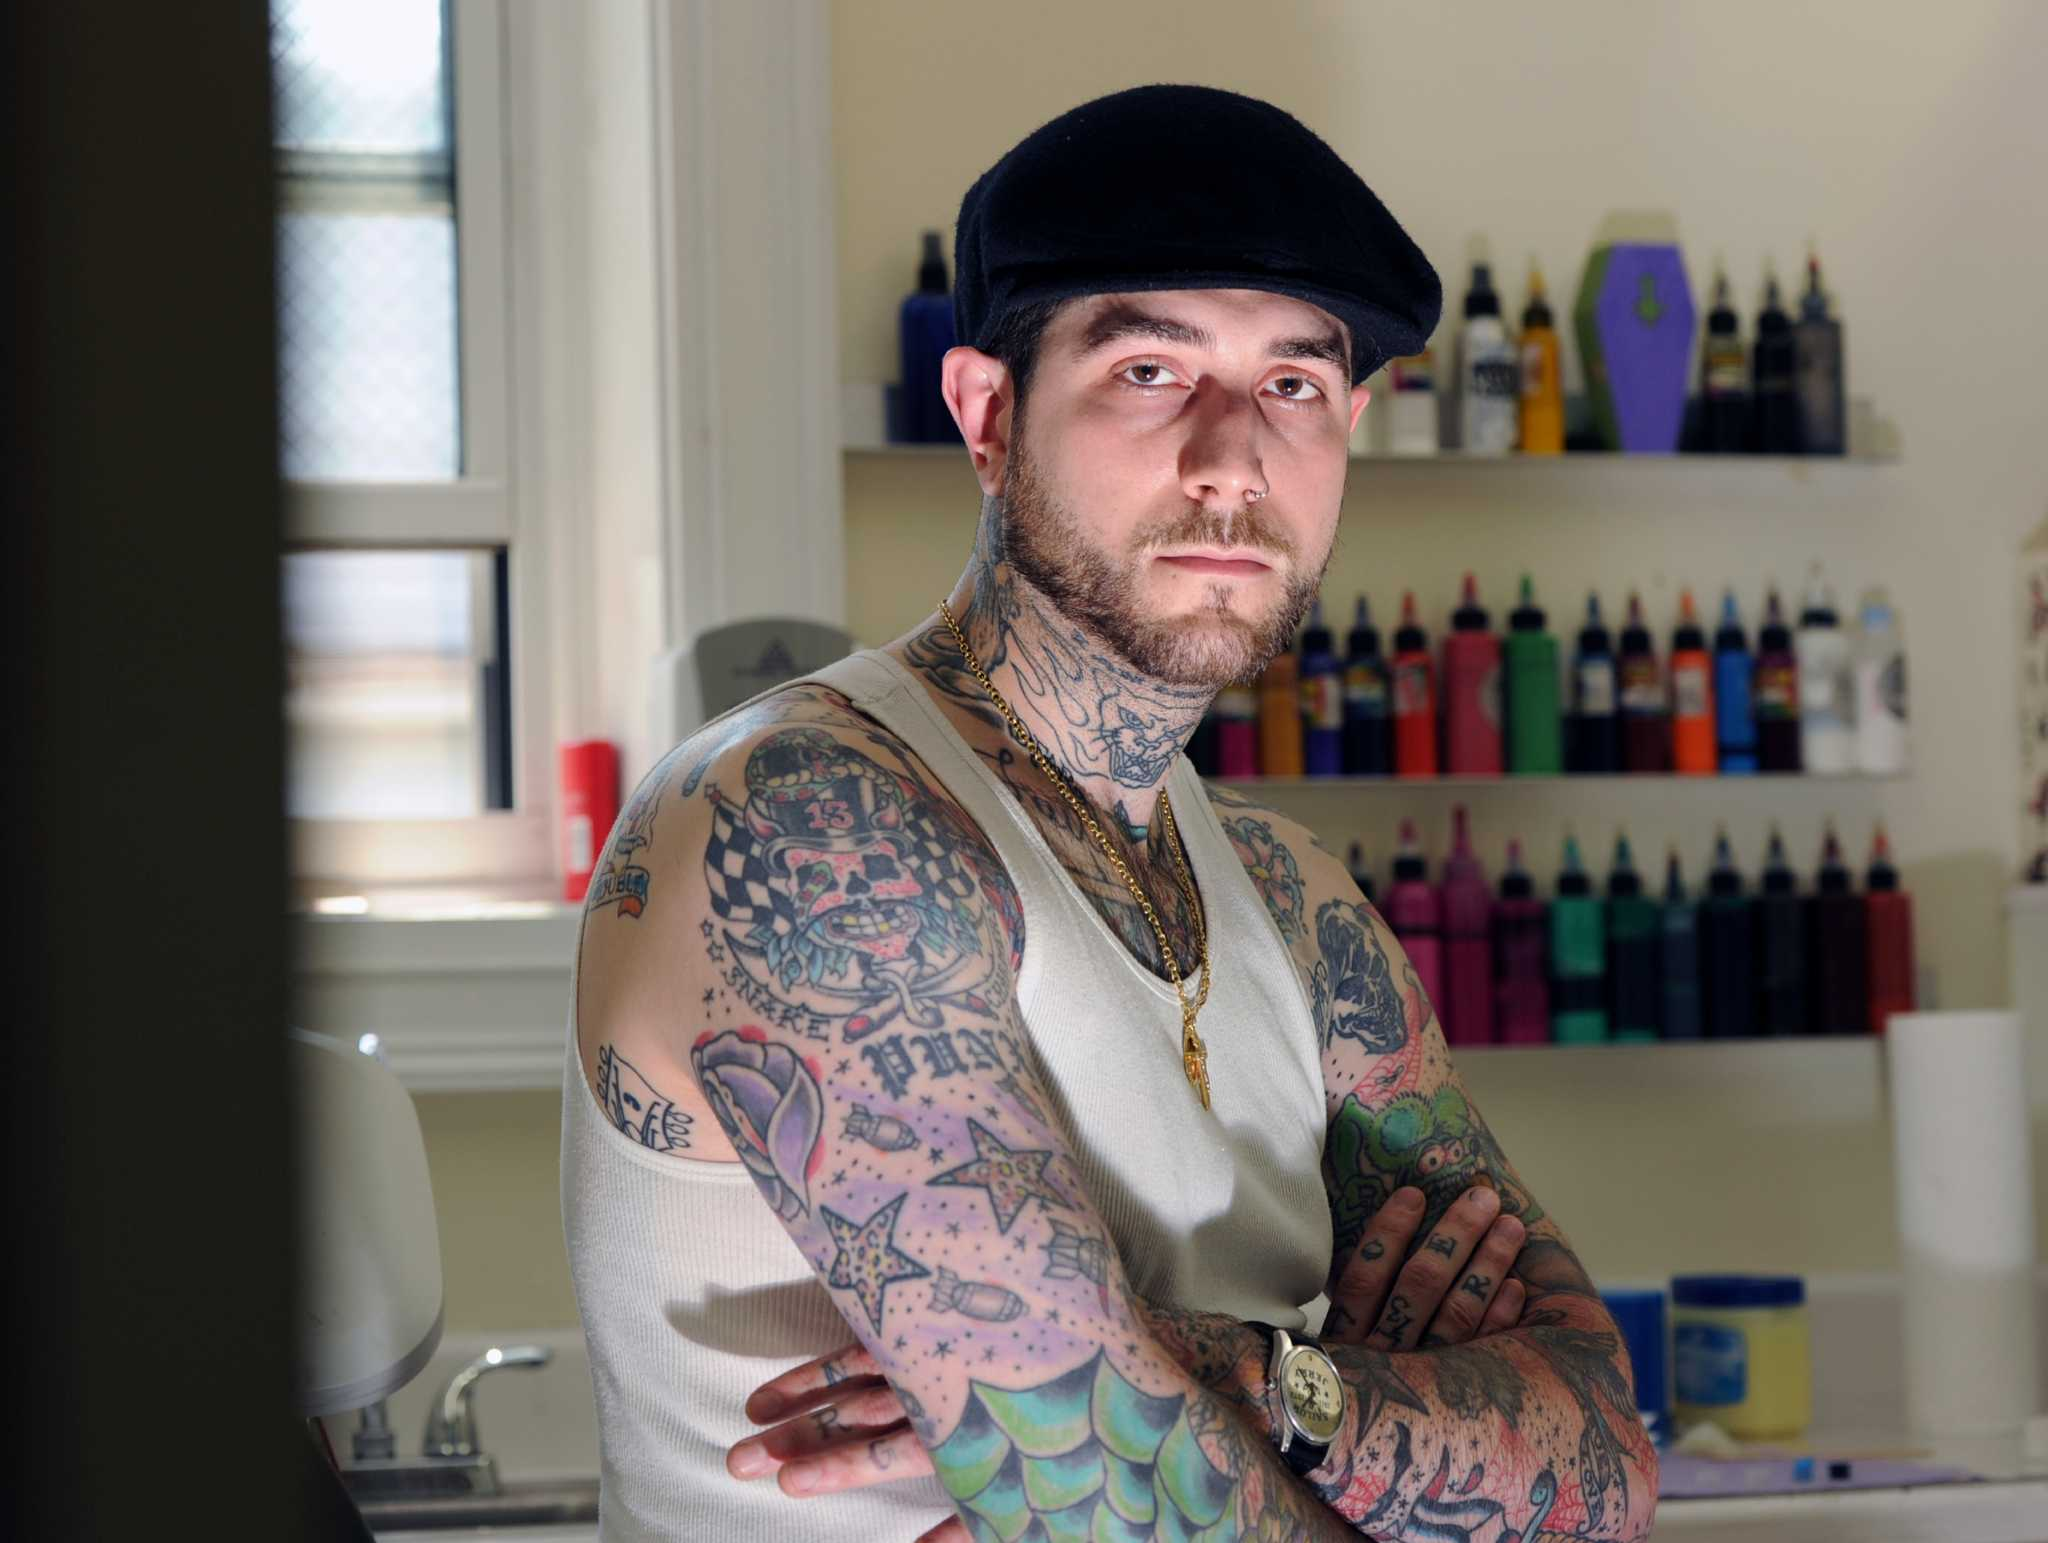 State considers licensing tattoo artists connecticut post for Tattoo artist license